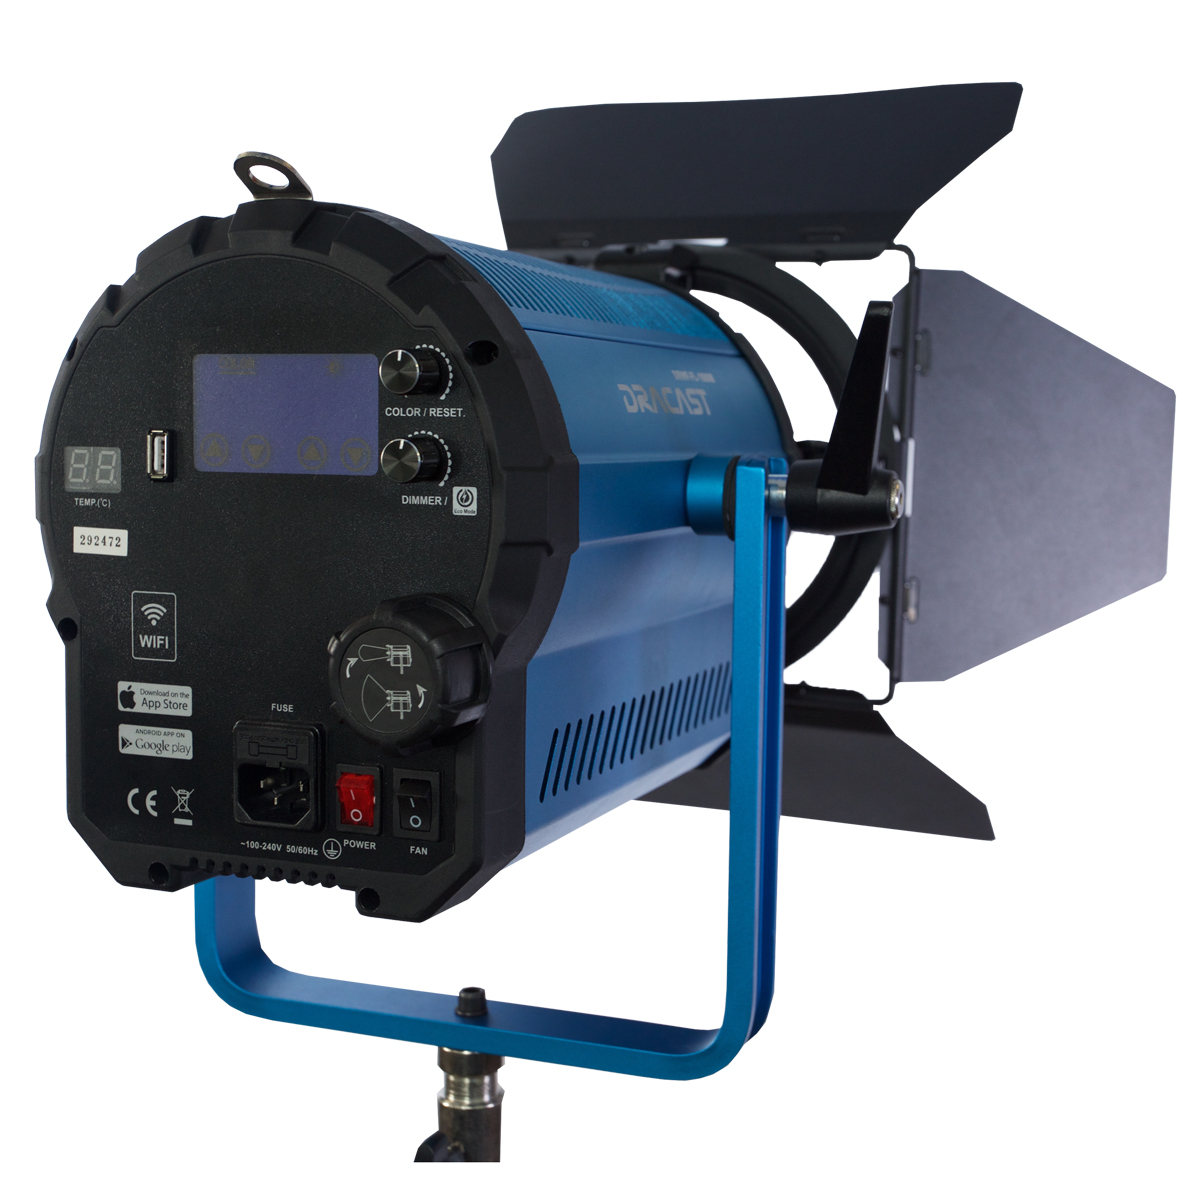 Fresnel 1500 Back View